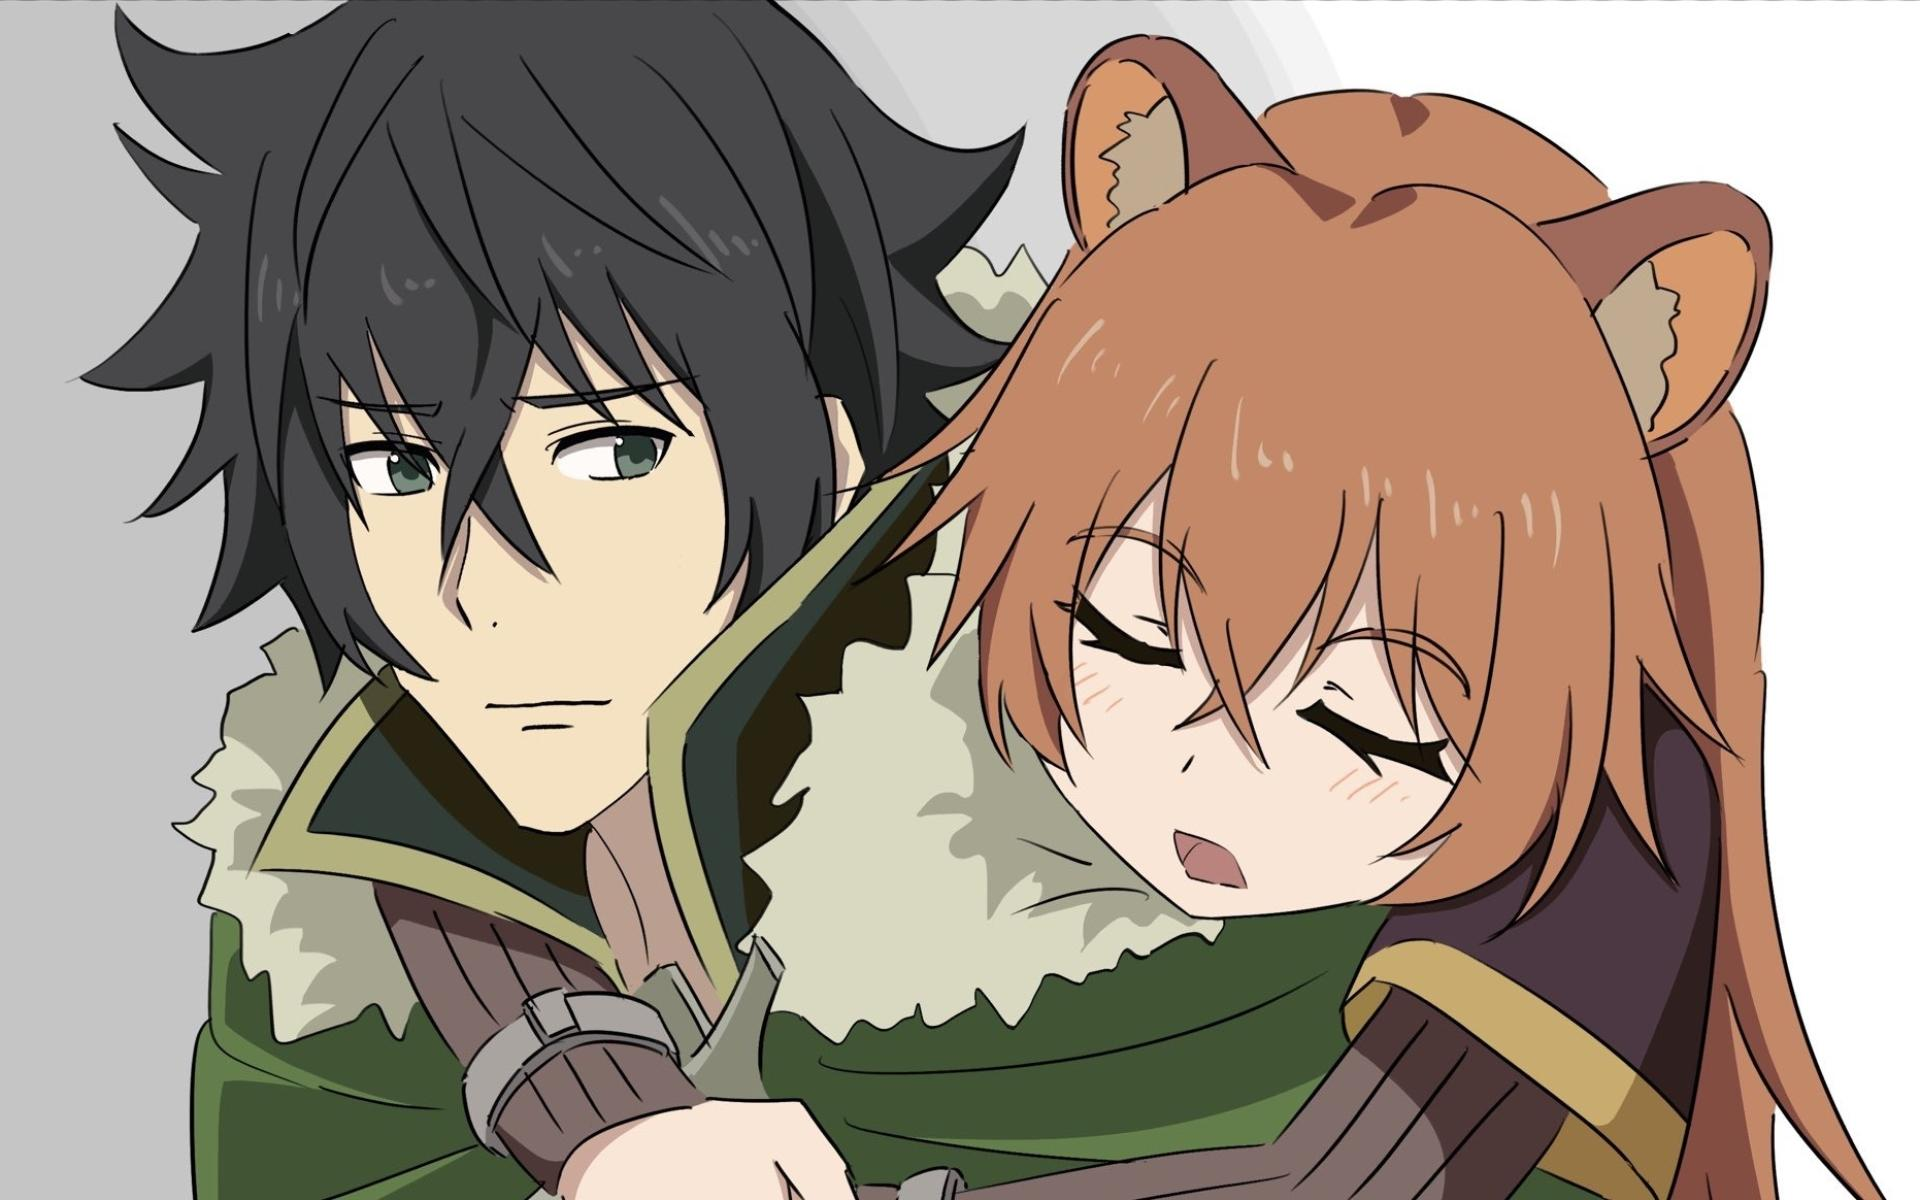 Wallpapers Anime, Sleep, Naofumi Iwatani, Raphtalia Desktop